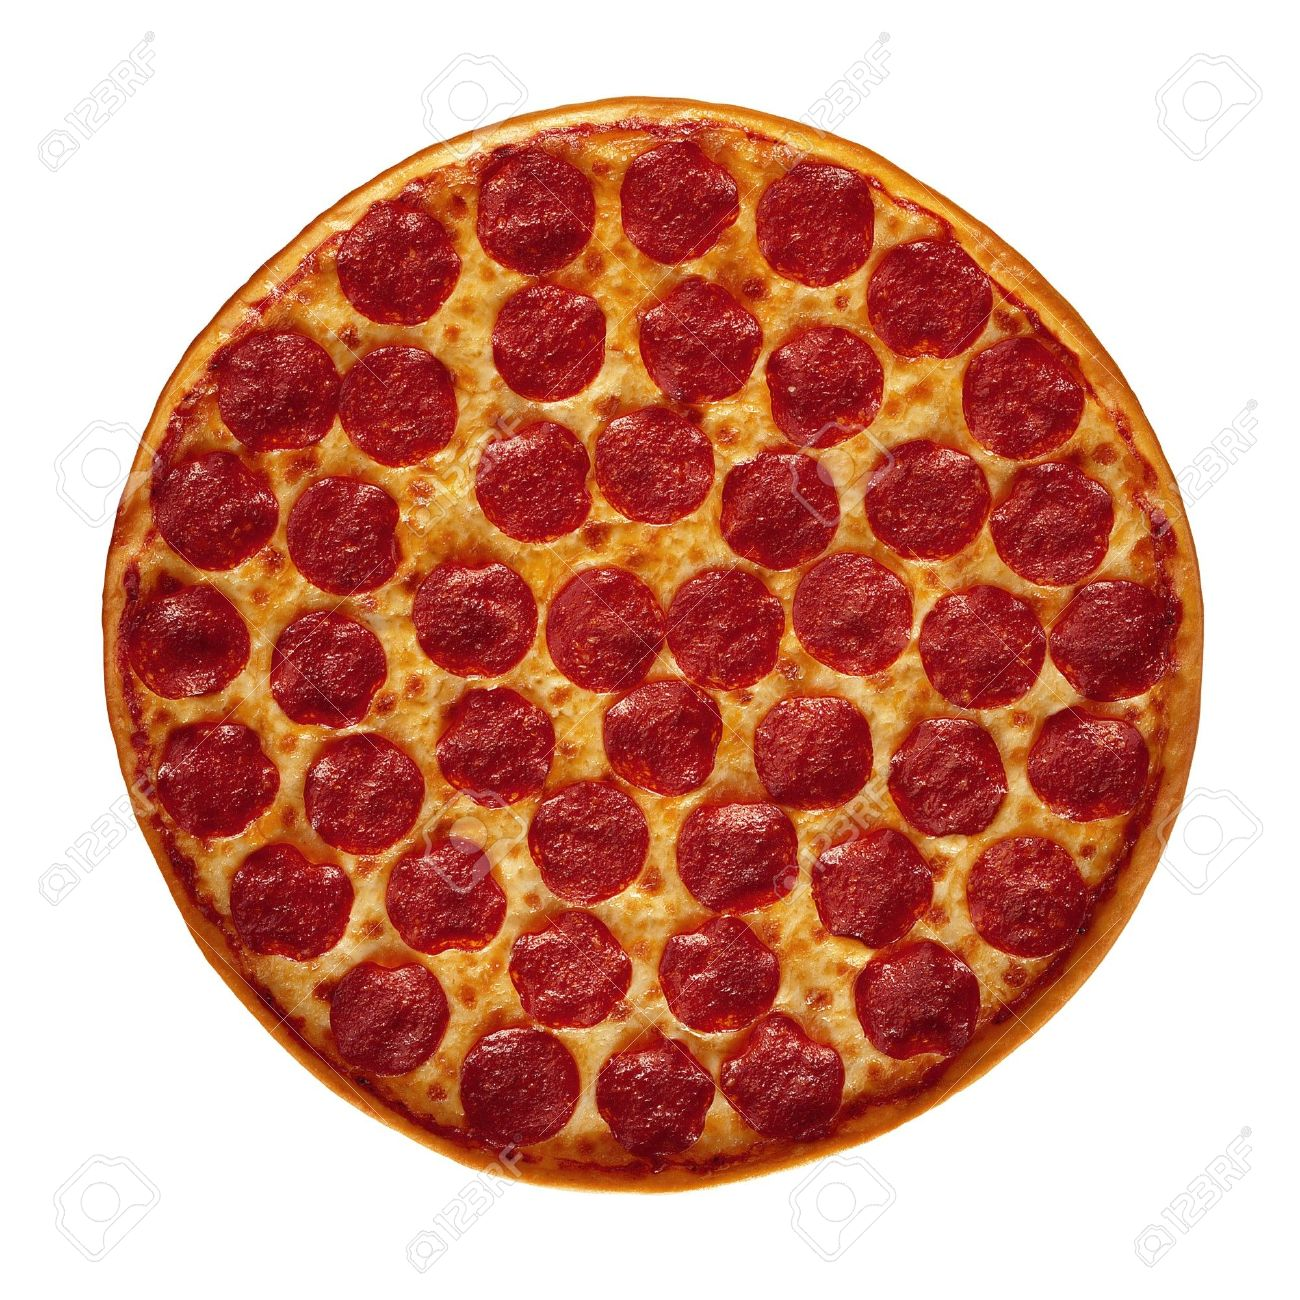 Whole pizza clipart 2 » Clipart Station.